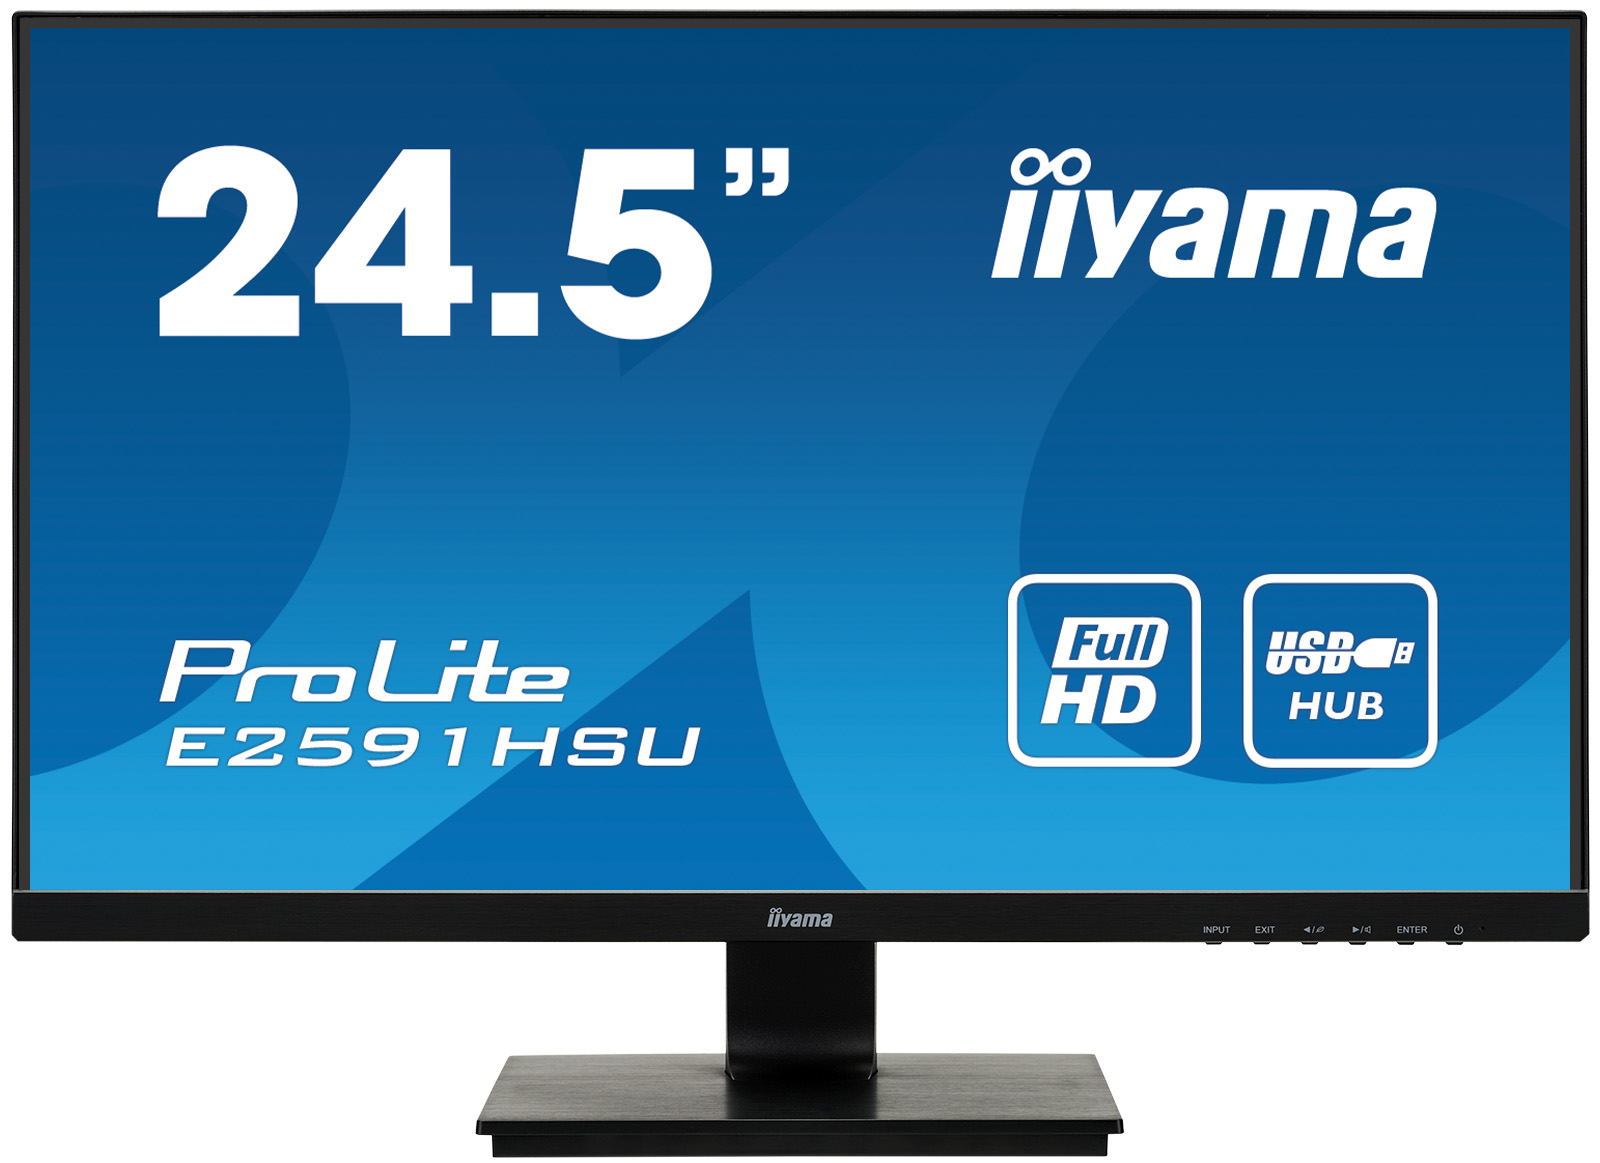 25'' iiyama E2591HSU-B1: TN, FullHD@75Hz, 250cd/m2, 1ms, VGA, HDMI, DP, USB, FreeSync, černý